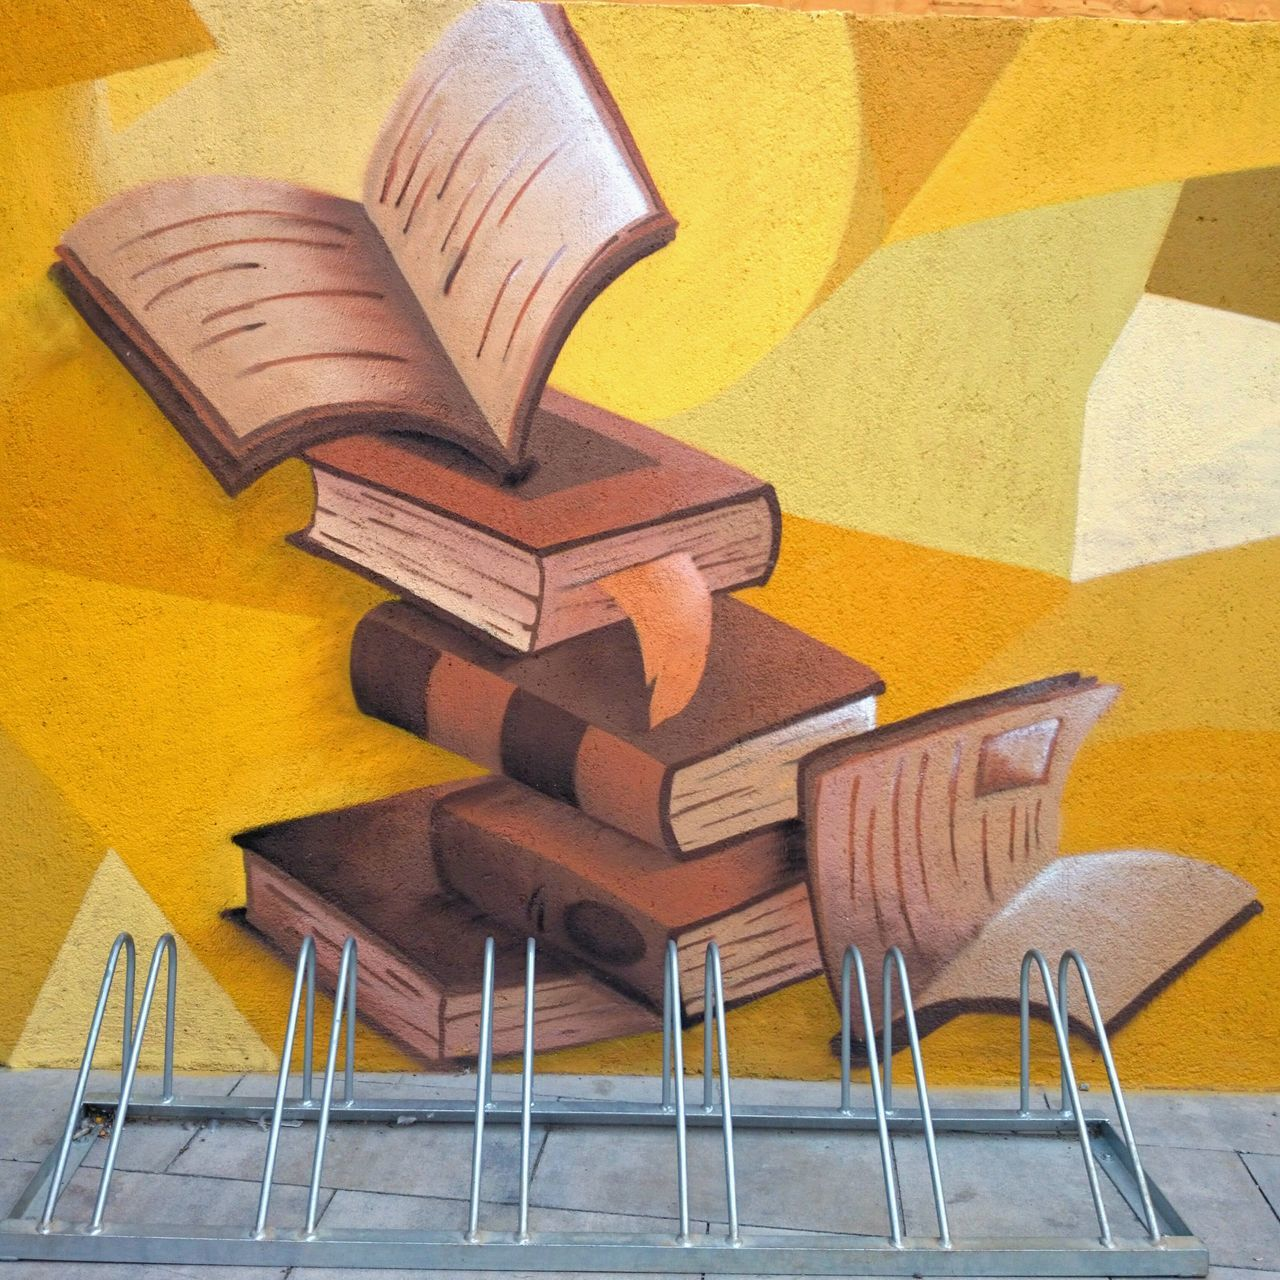 Books Art Graffiti Street Under Pressure